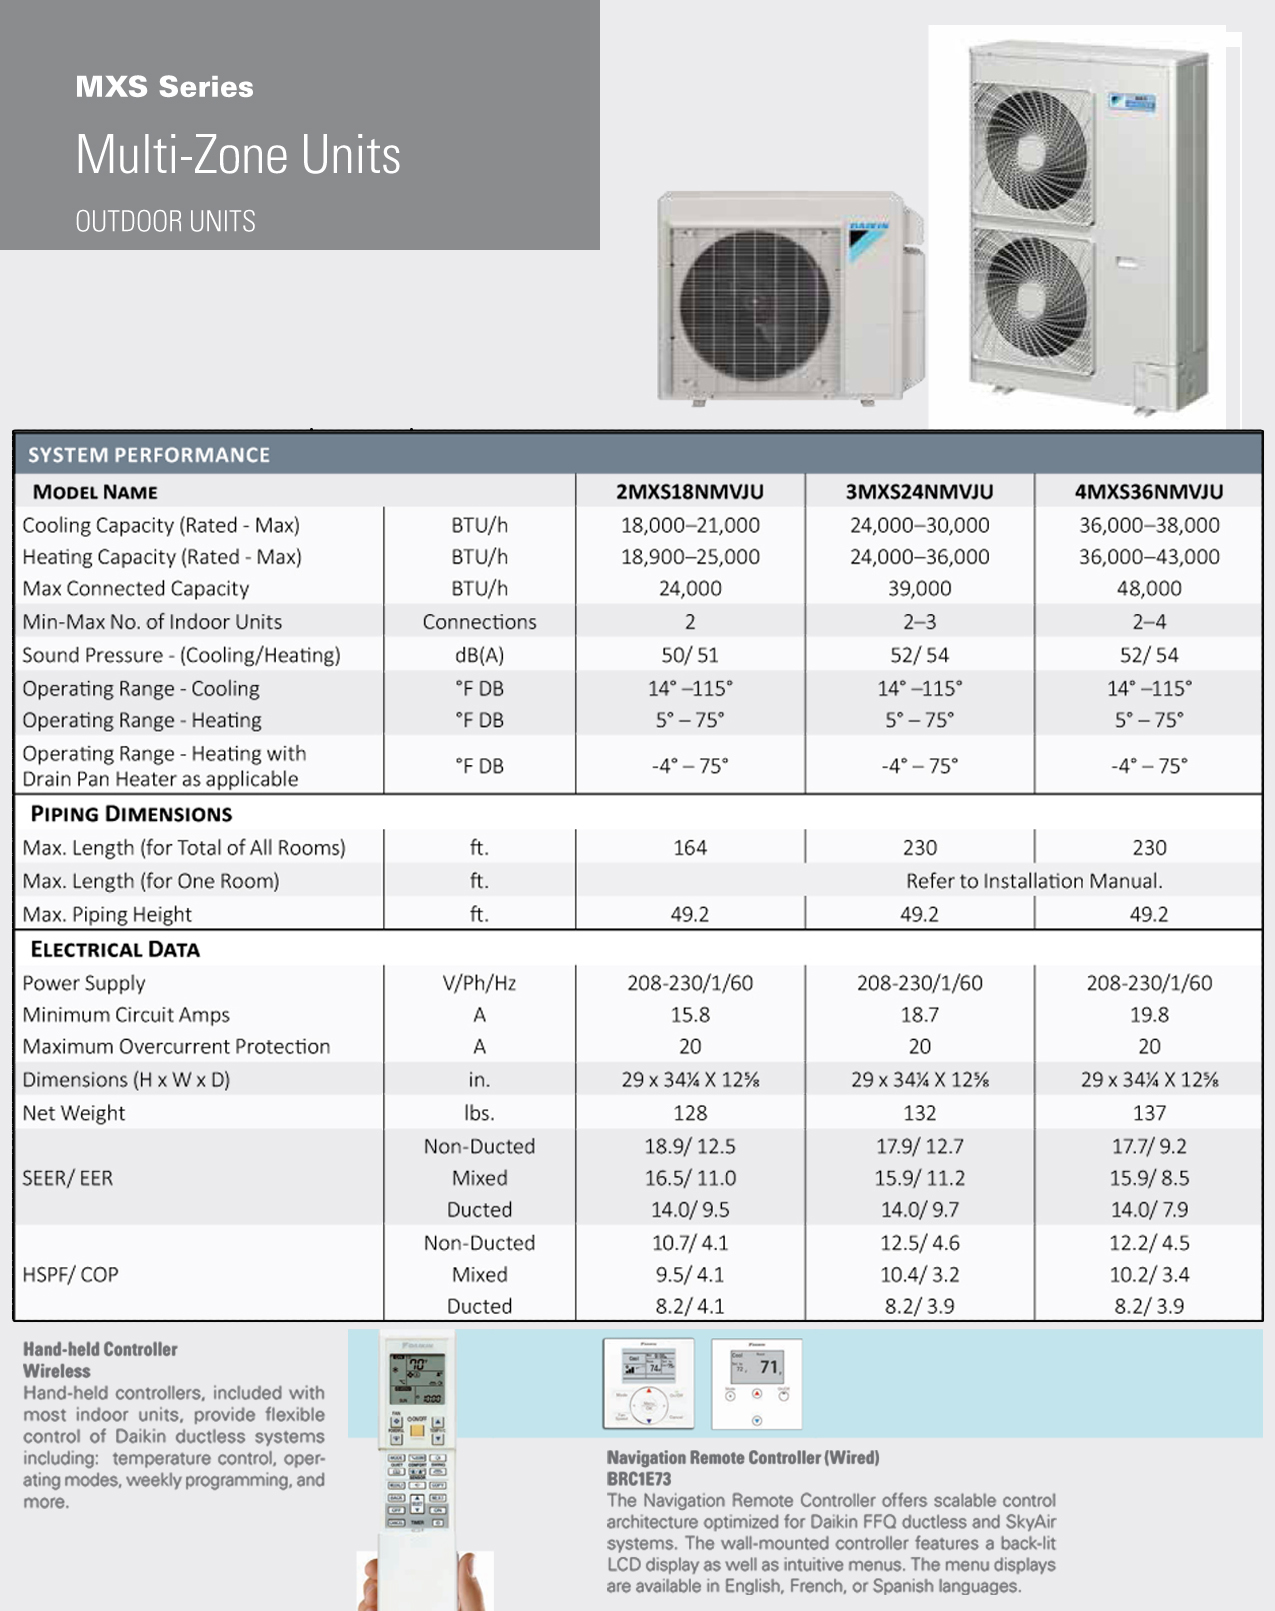 Mini Split Multi 3 Zone Daikin Up To 179 Seer Heat Pump System Arcoaire Wiring Diagram The Comfort You Demand While Conserving Energy 30 Or More This Is All Backed With A 12 Year Parts Warranty Which One Of Strongest In